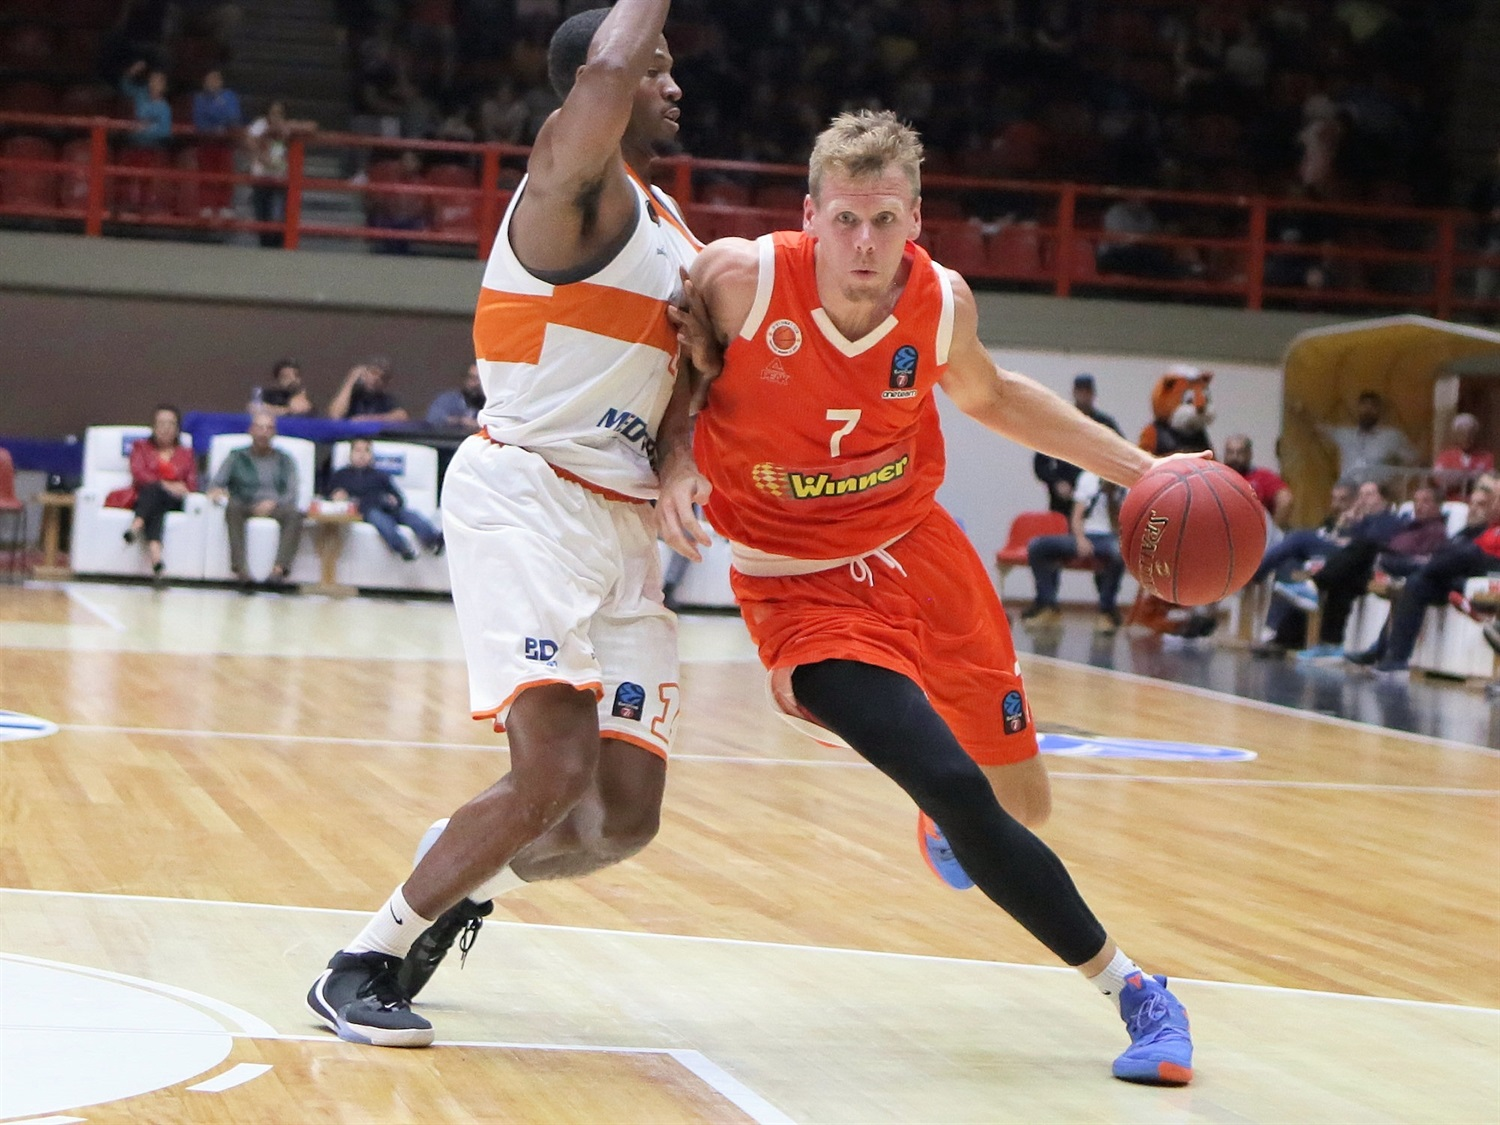 Jordan Swing - Maccabi Rishon LeZion (photo Promitheas) - EC19